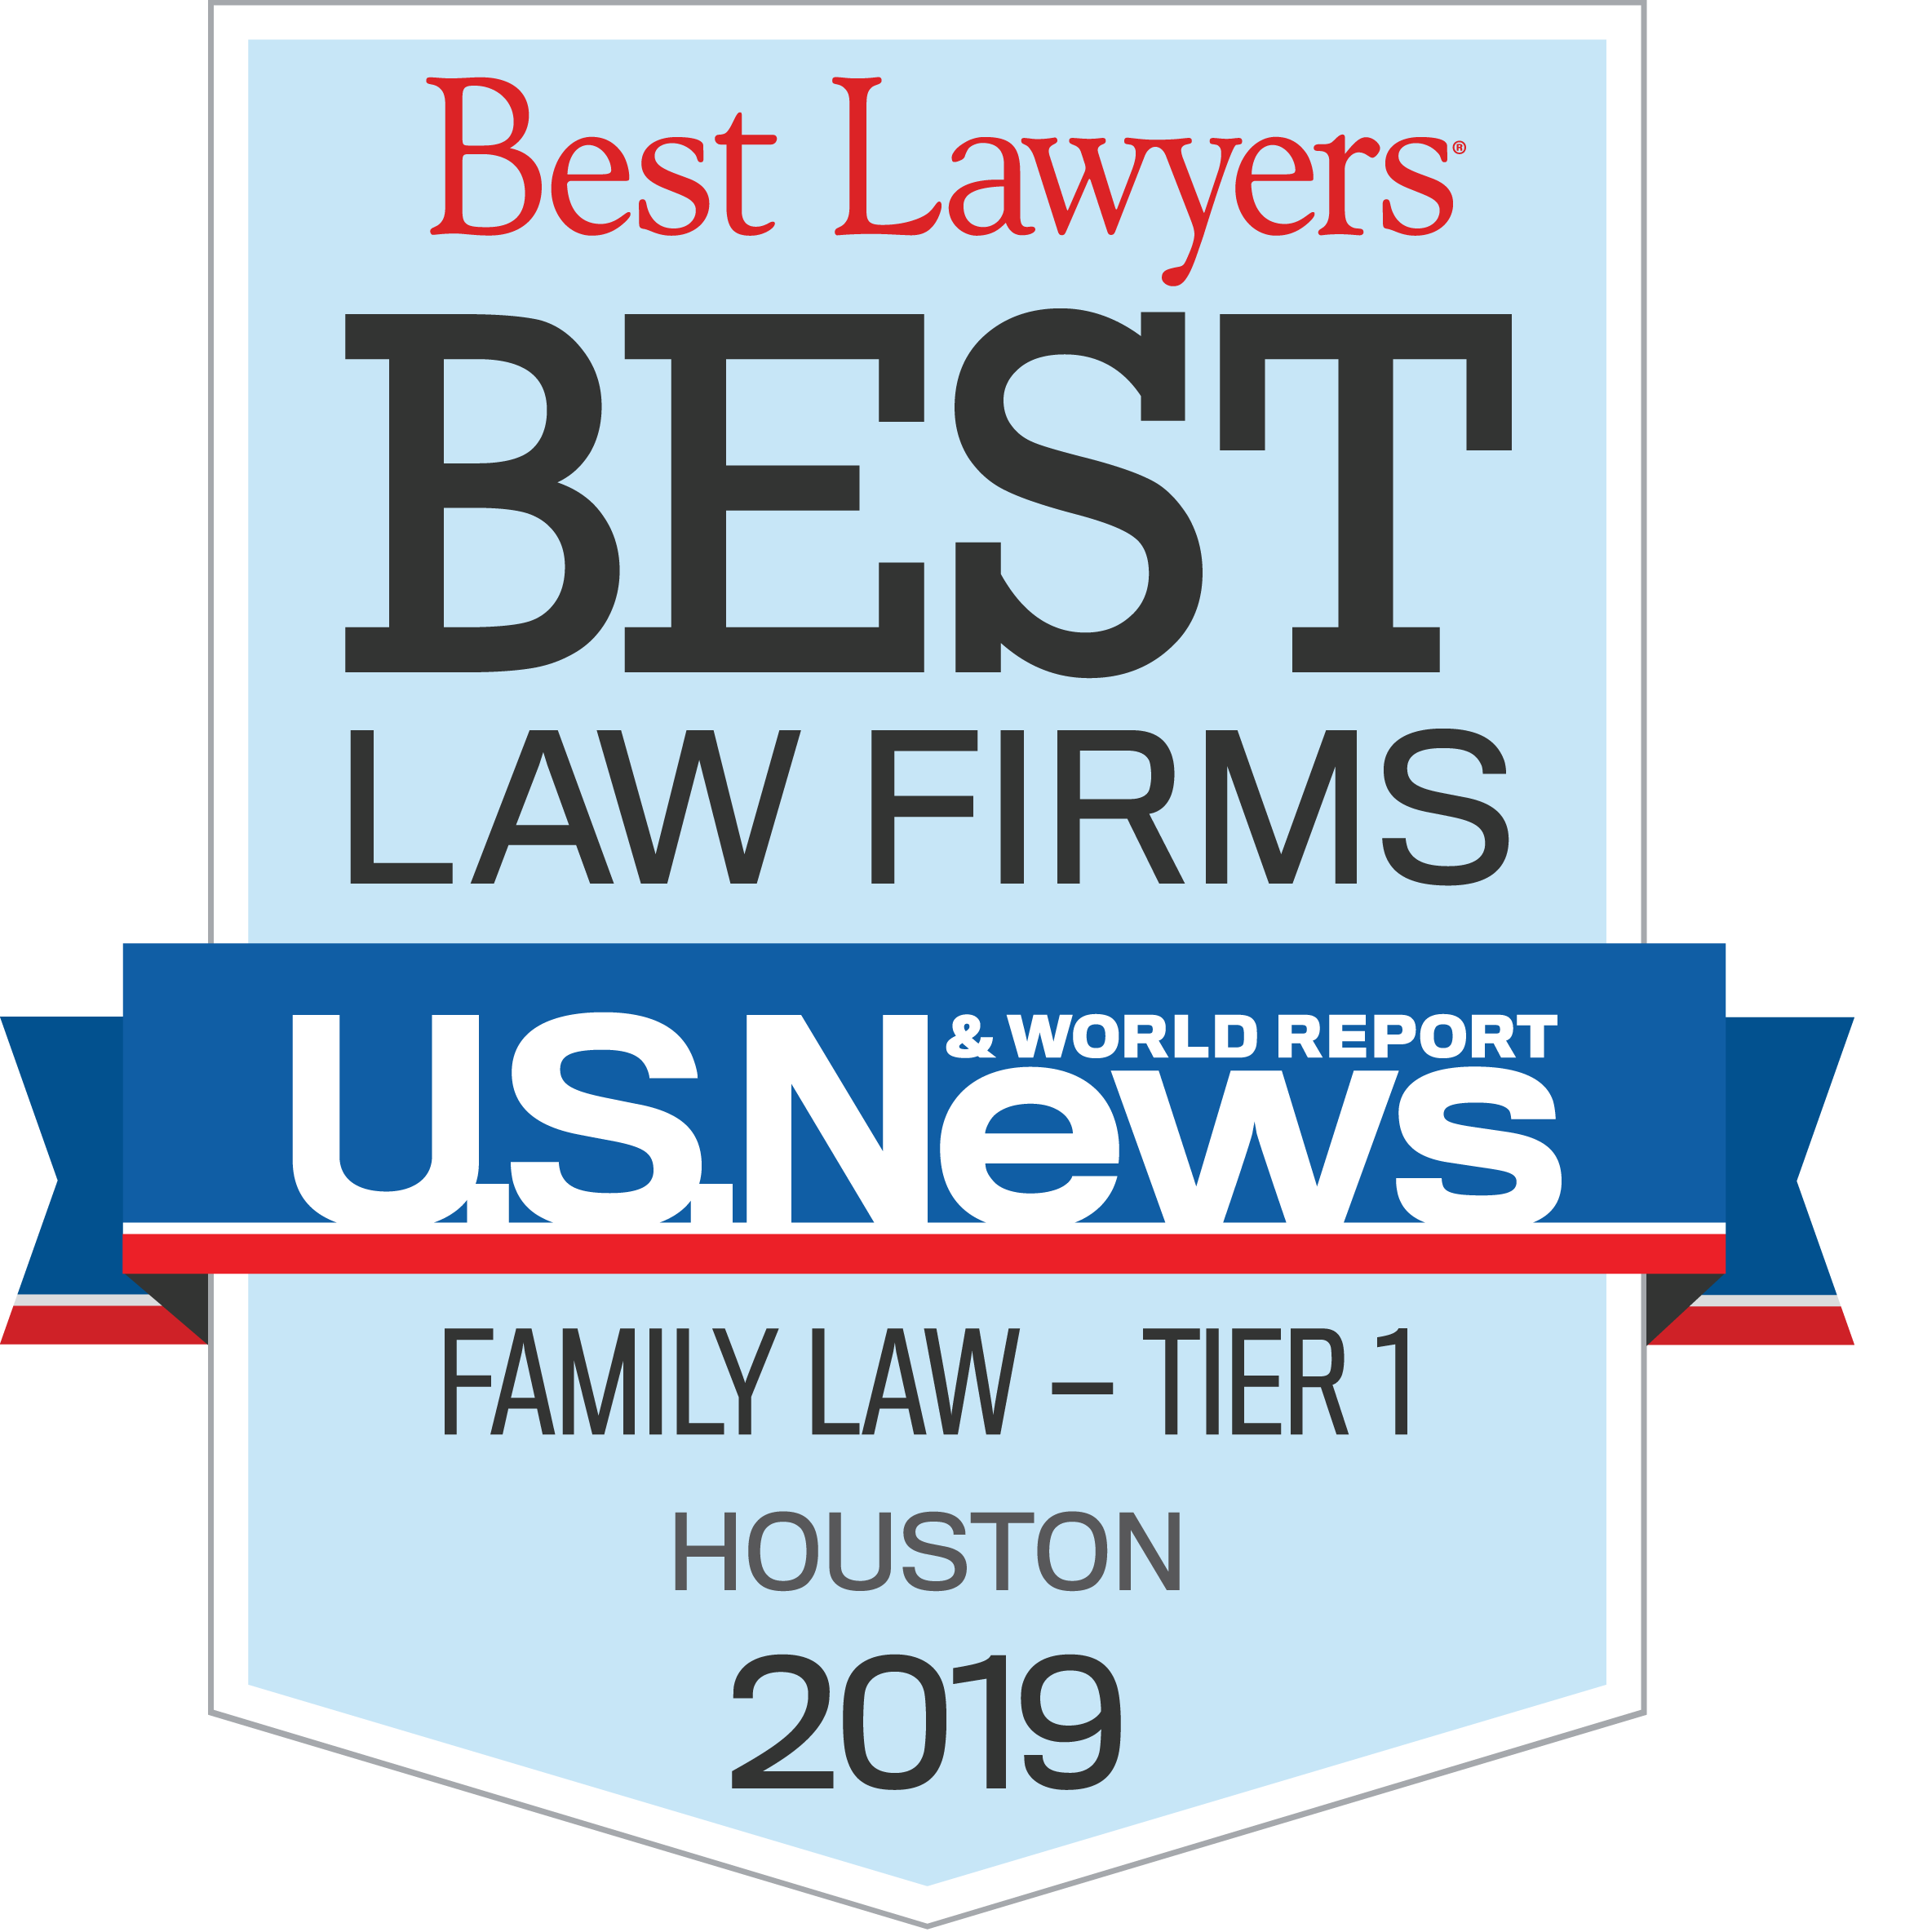 Award Badge US News and World Report Best Law Firms - Family Law - Tier 1 - Houston